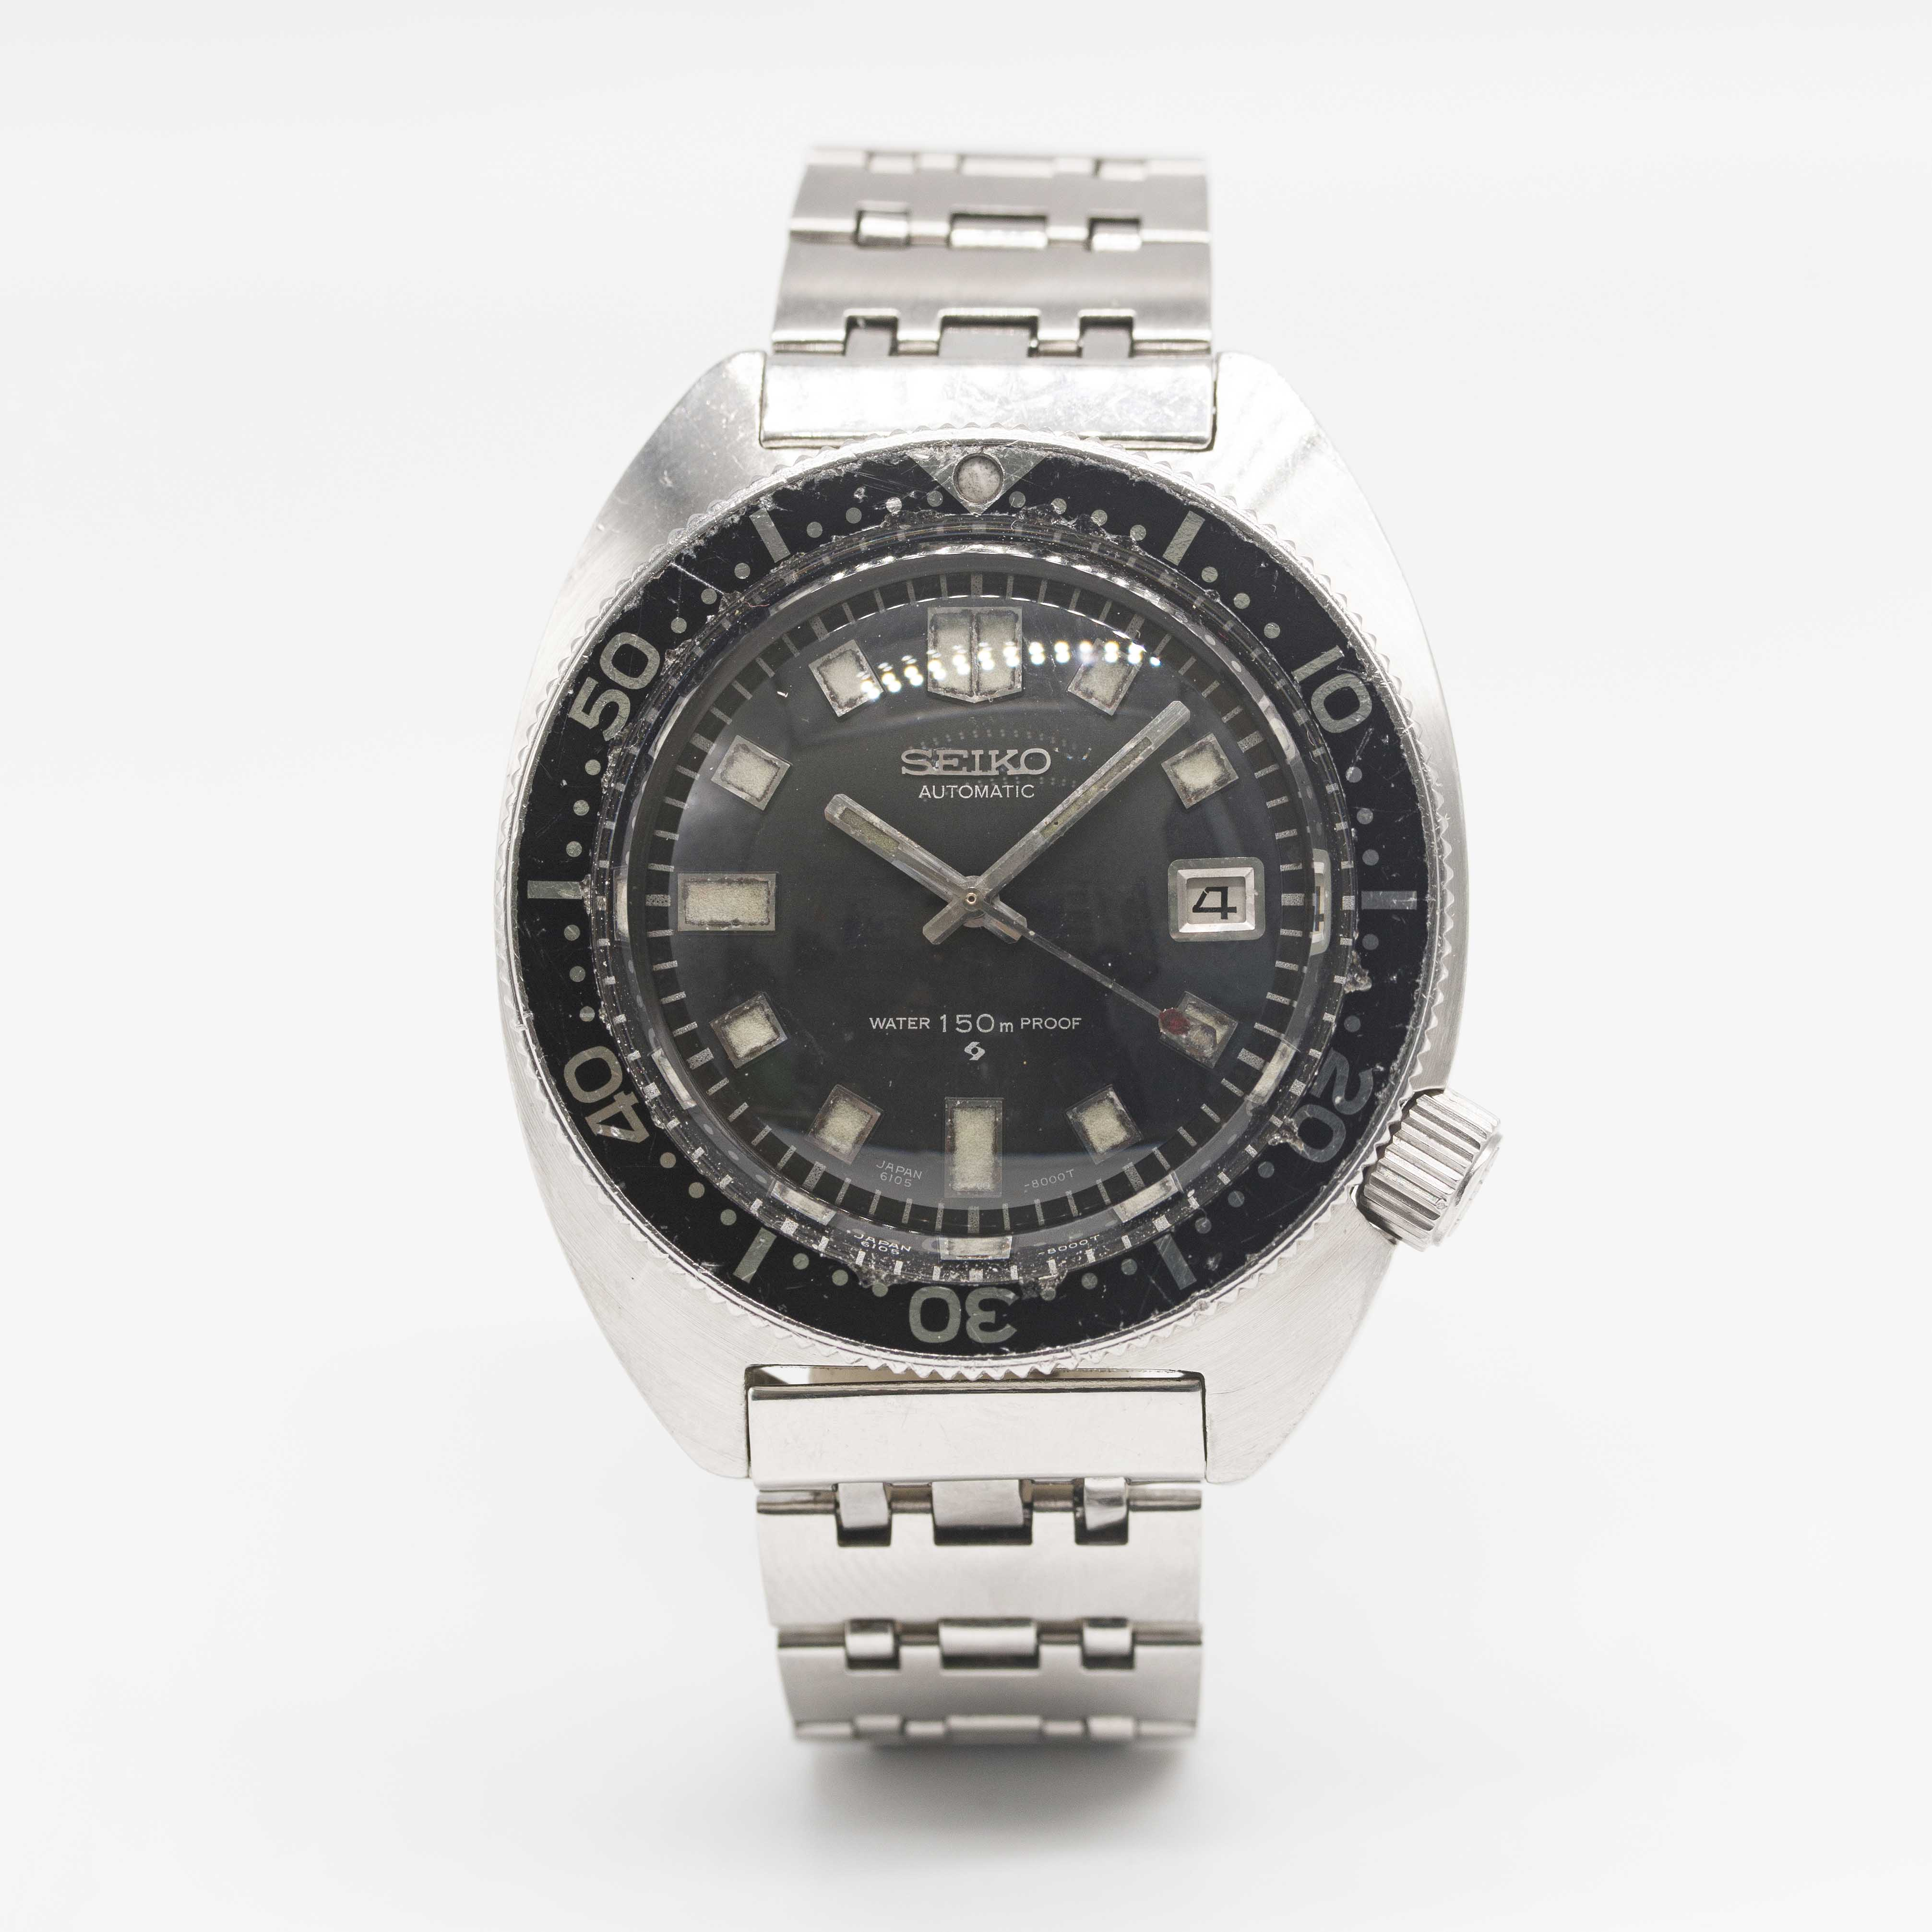 Lot 30 - A RARE GENTLEMAN'S STAINLESS STEEL SEIKO 150M AUTOMATIC DIVERS BRACELET WATCH CIRCA 1970s, REF.